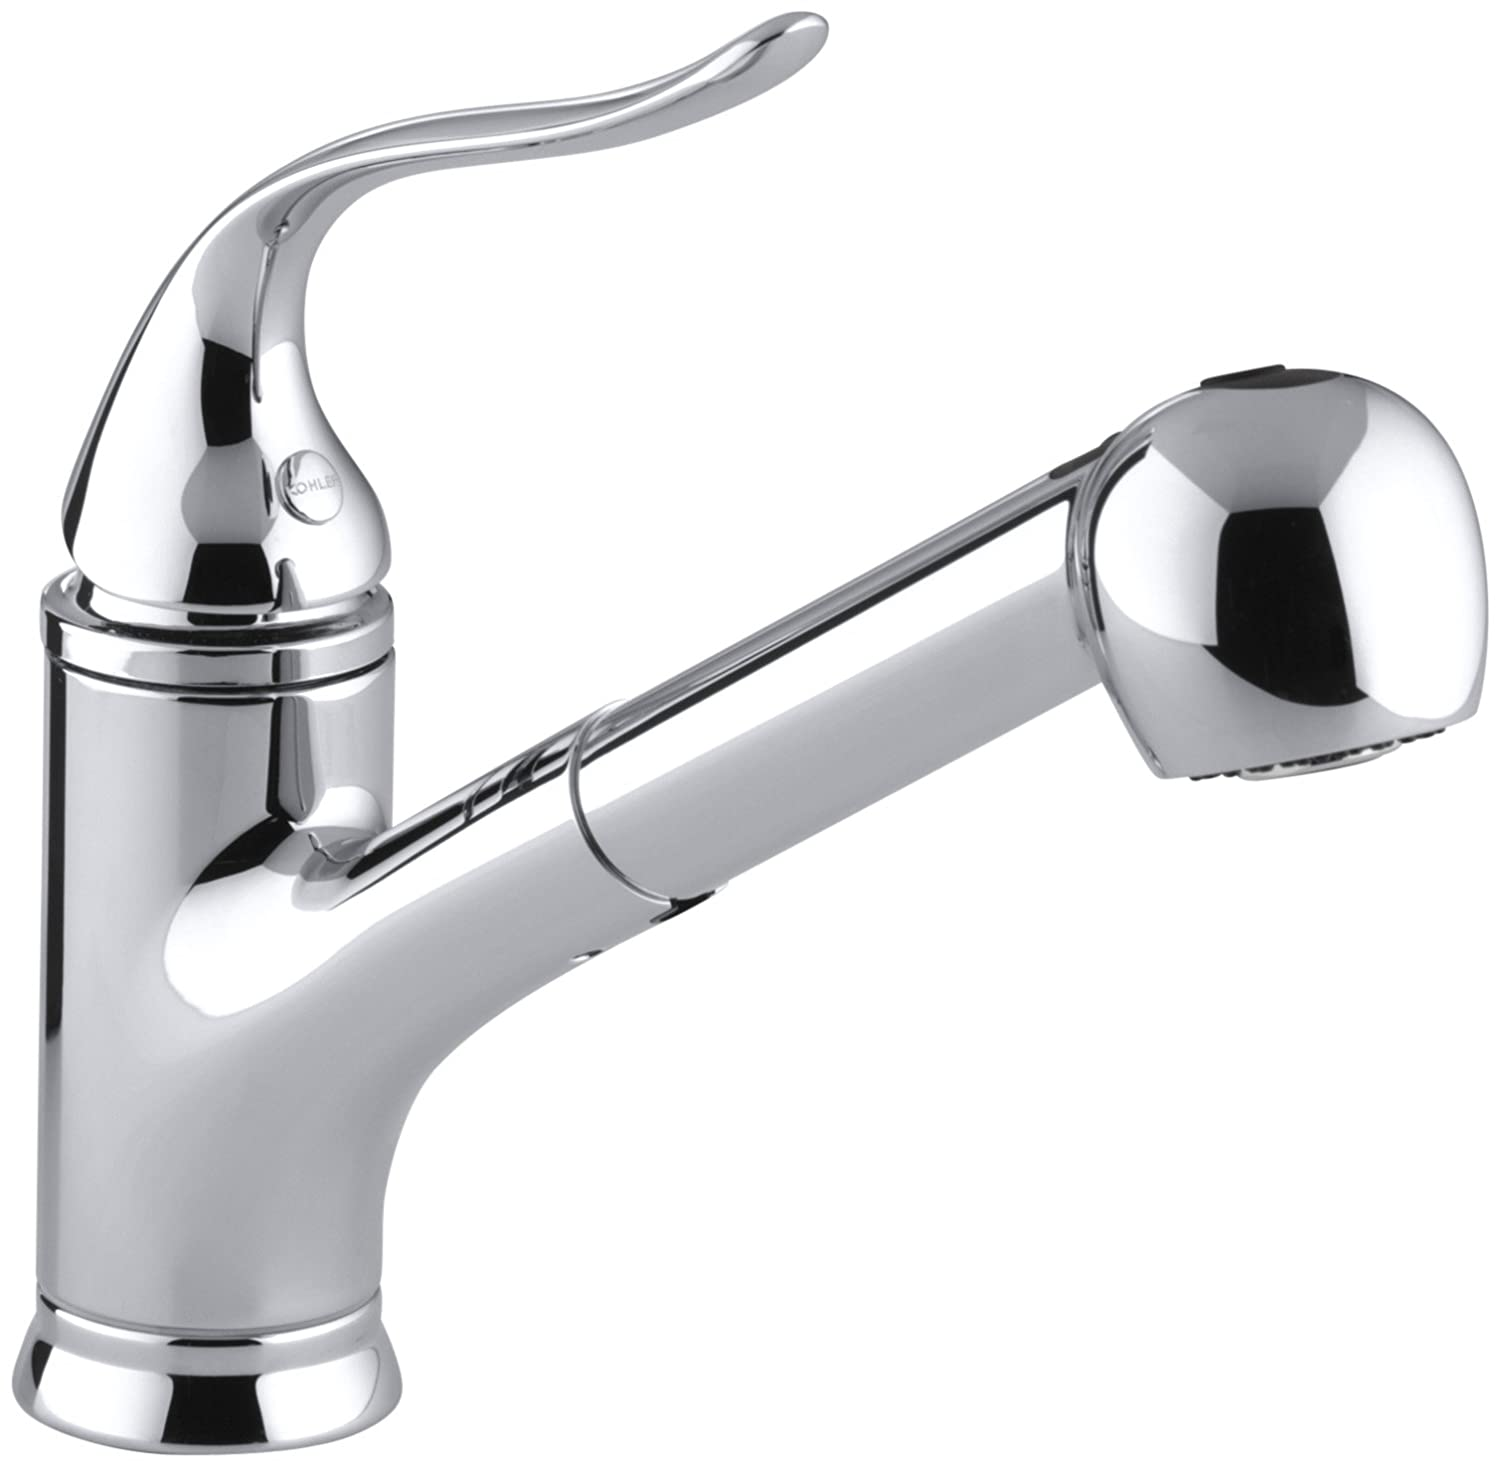 KOHLER K-15160-CP Coralais Single-Control Pullout Spray Kitchen Sink Faucet, Polished Chrome